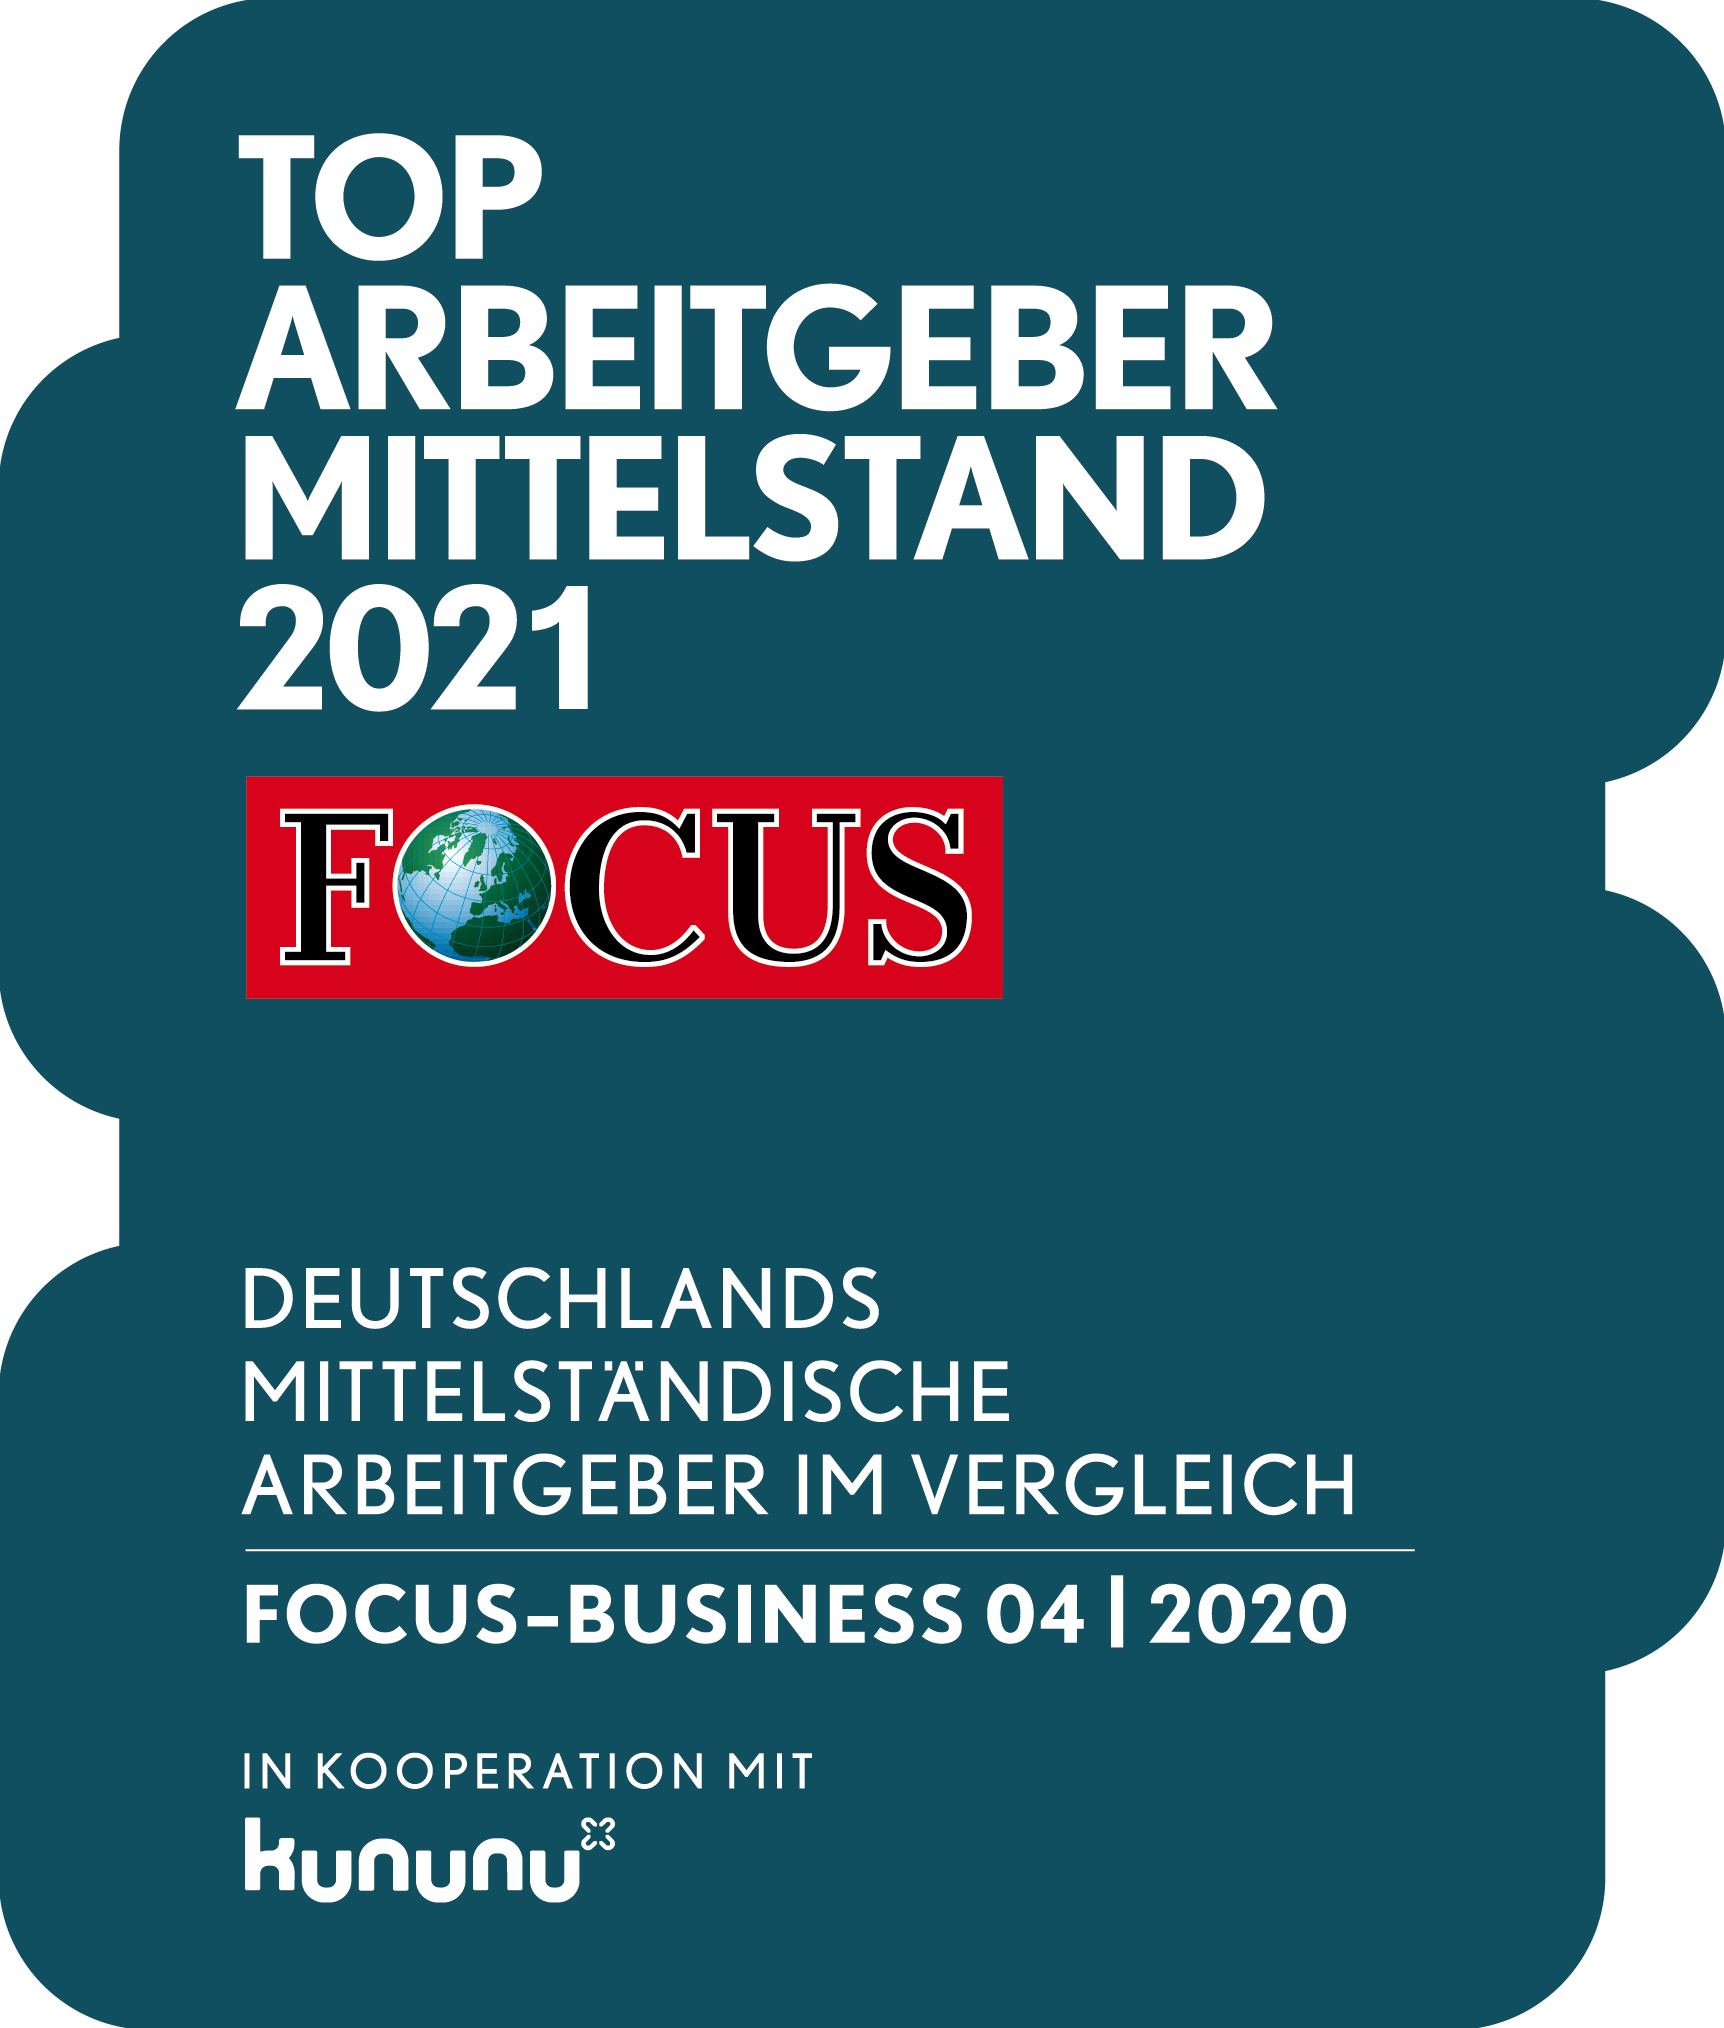 "Siegel ""TOP ARBEITGEBER MITTELSTAND 2021"", FOCUS-BUSINESS 04/2020 in Kooperation mit kununu"